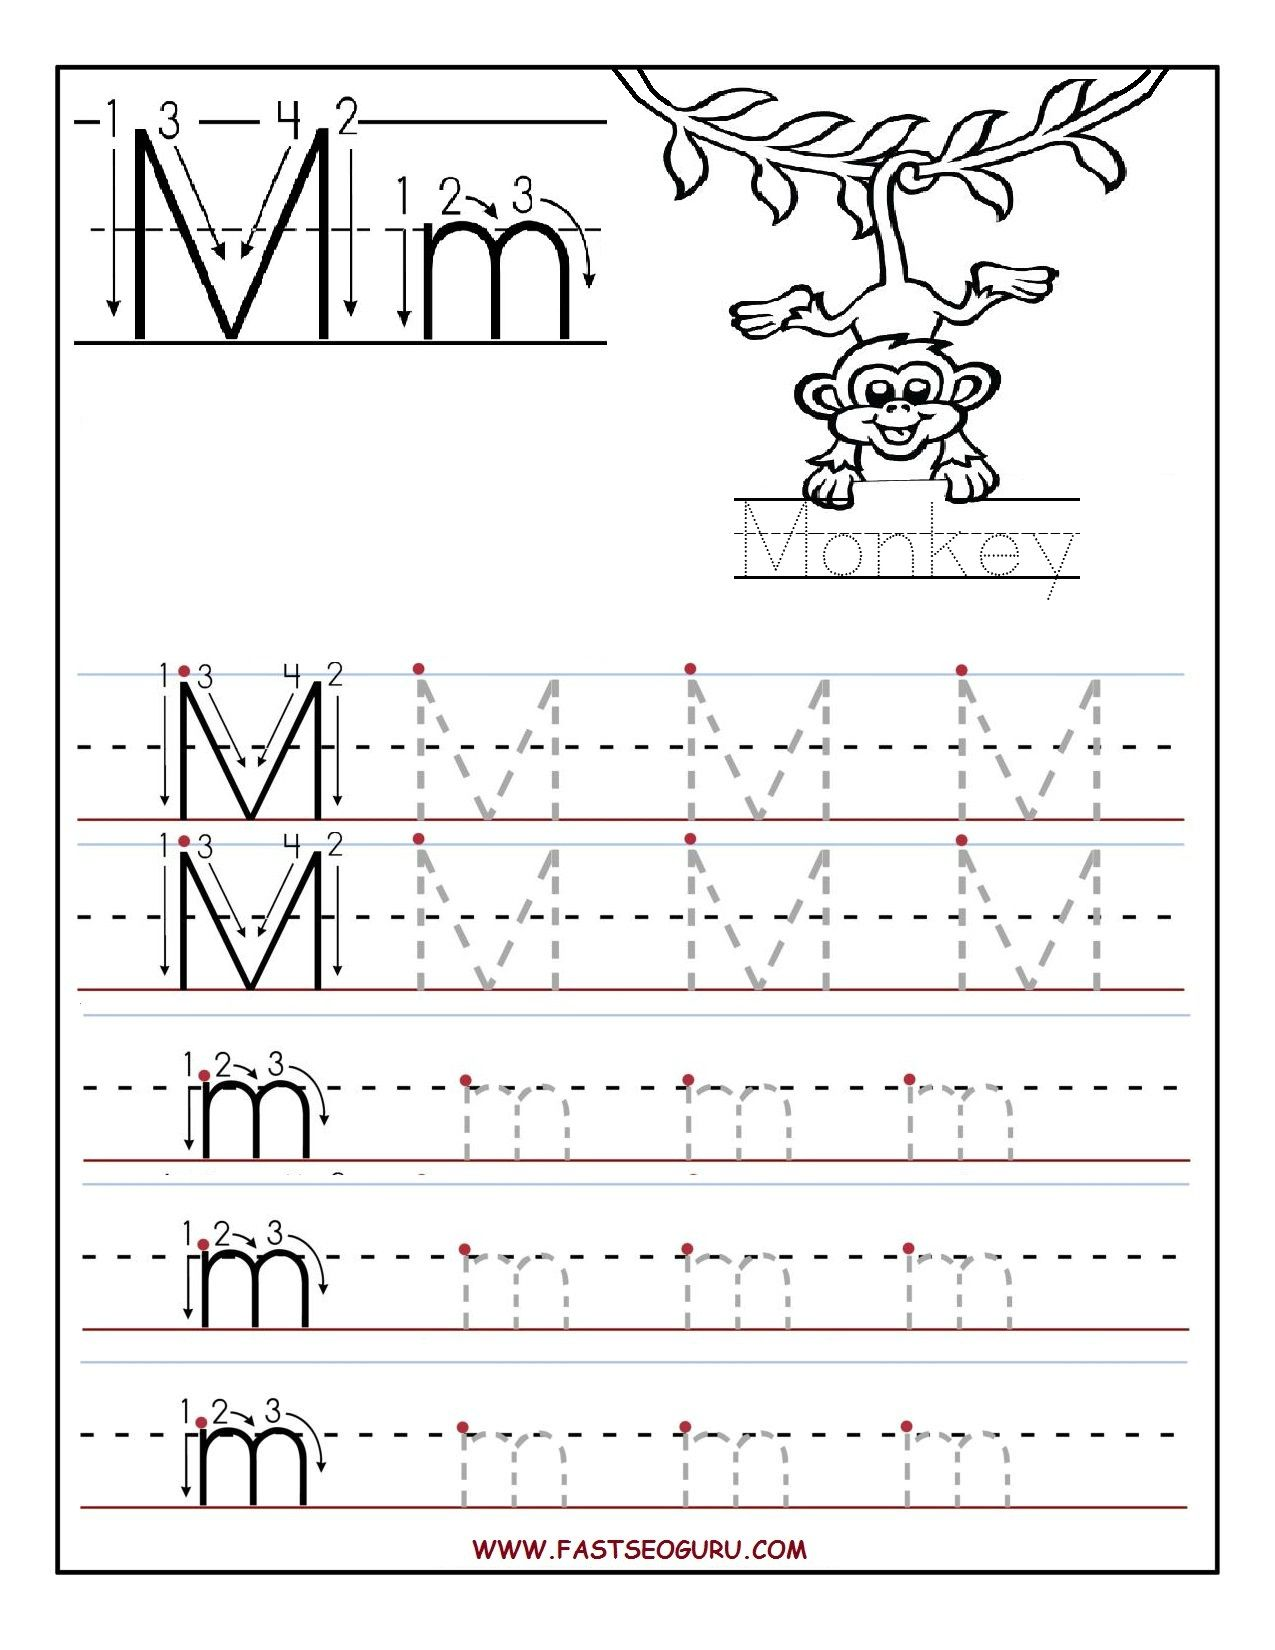 This is a graphic of Universal Trace Letters for Preschoolers